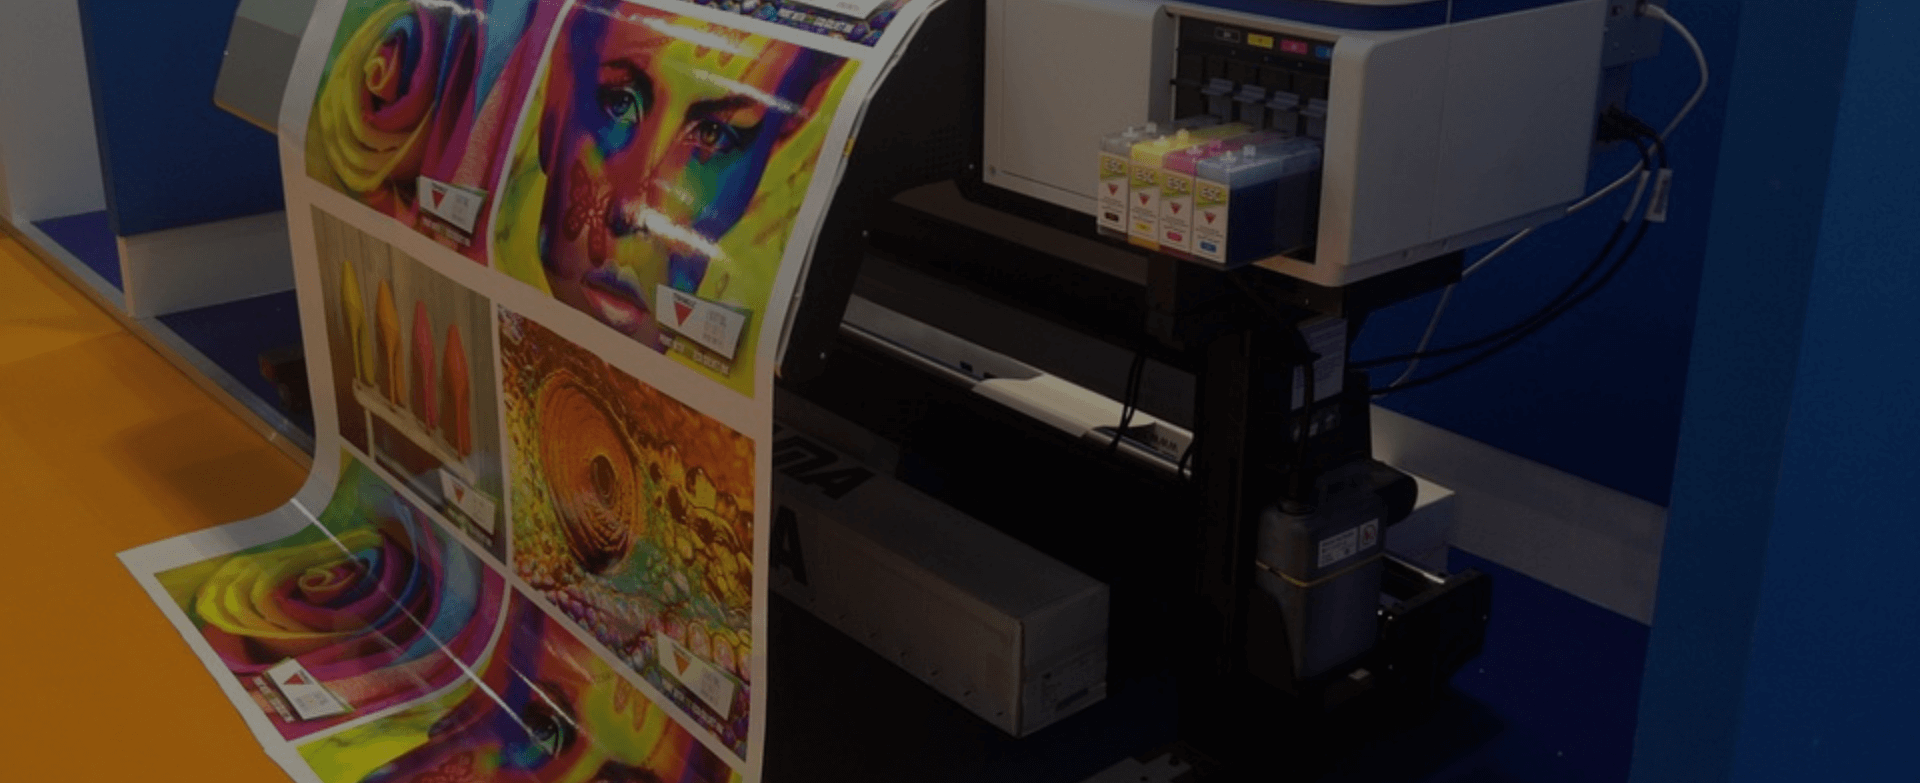 Offset printing Services in India